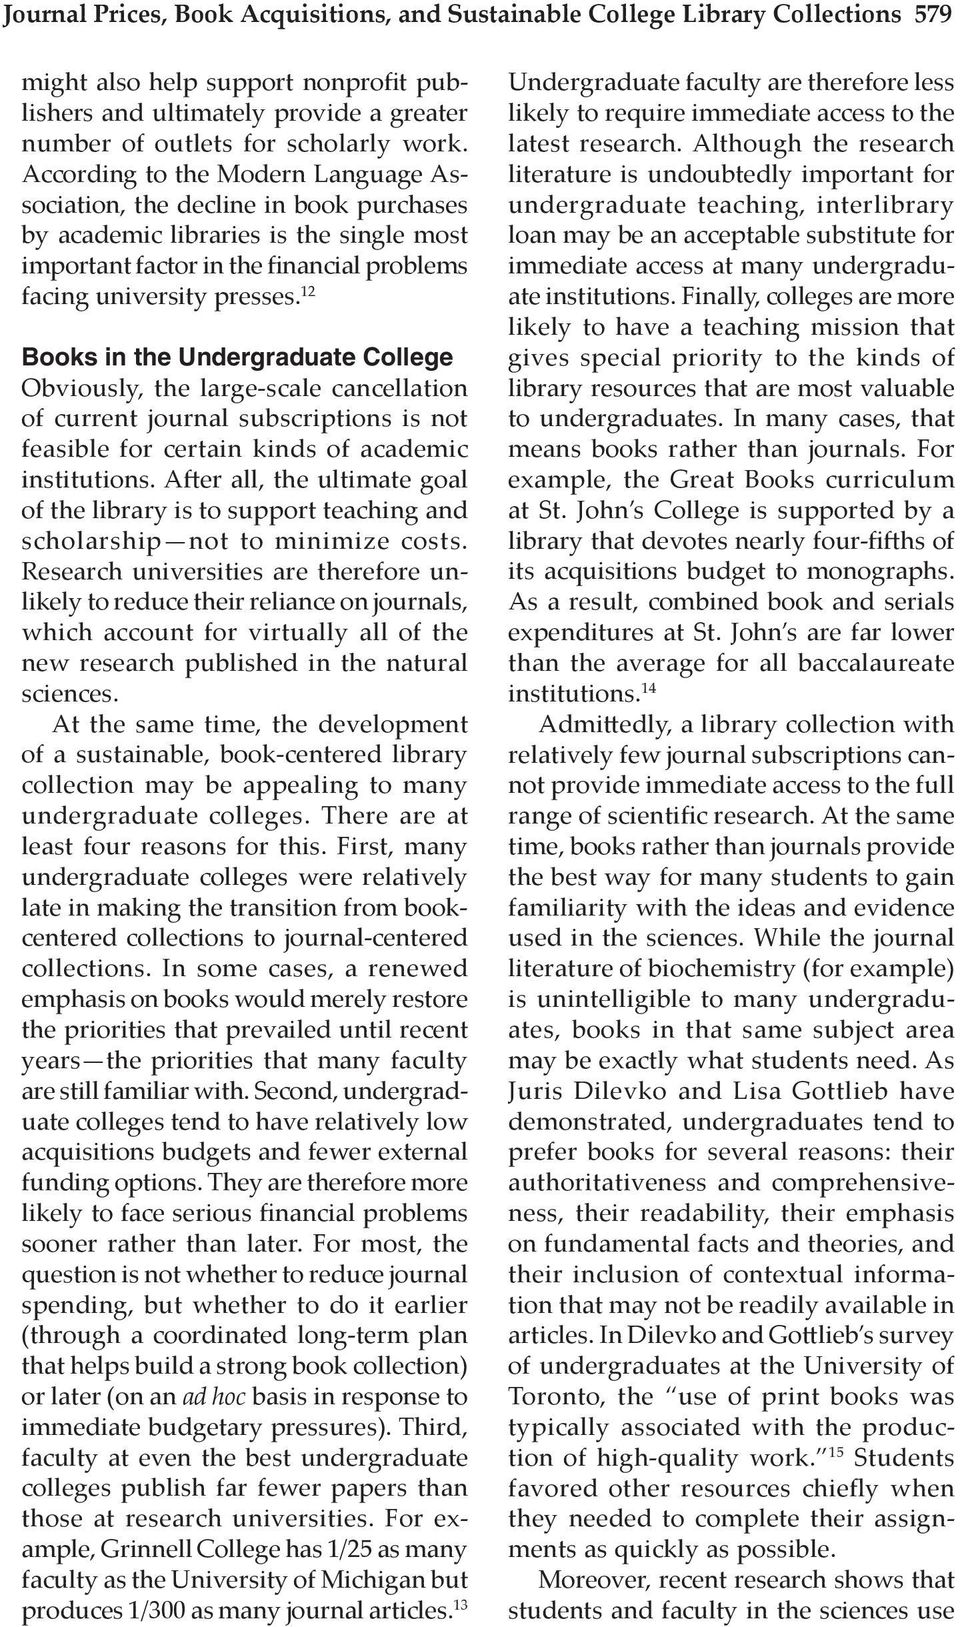 12 Books in the Undergraduate College Obviously, the large-scale cancellation of current journal subscriptions is not feasible for certain kinds of academic institutions.